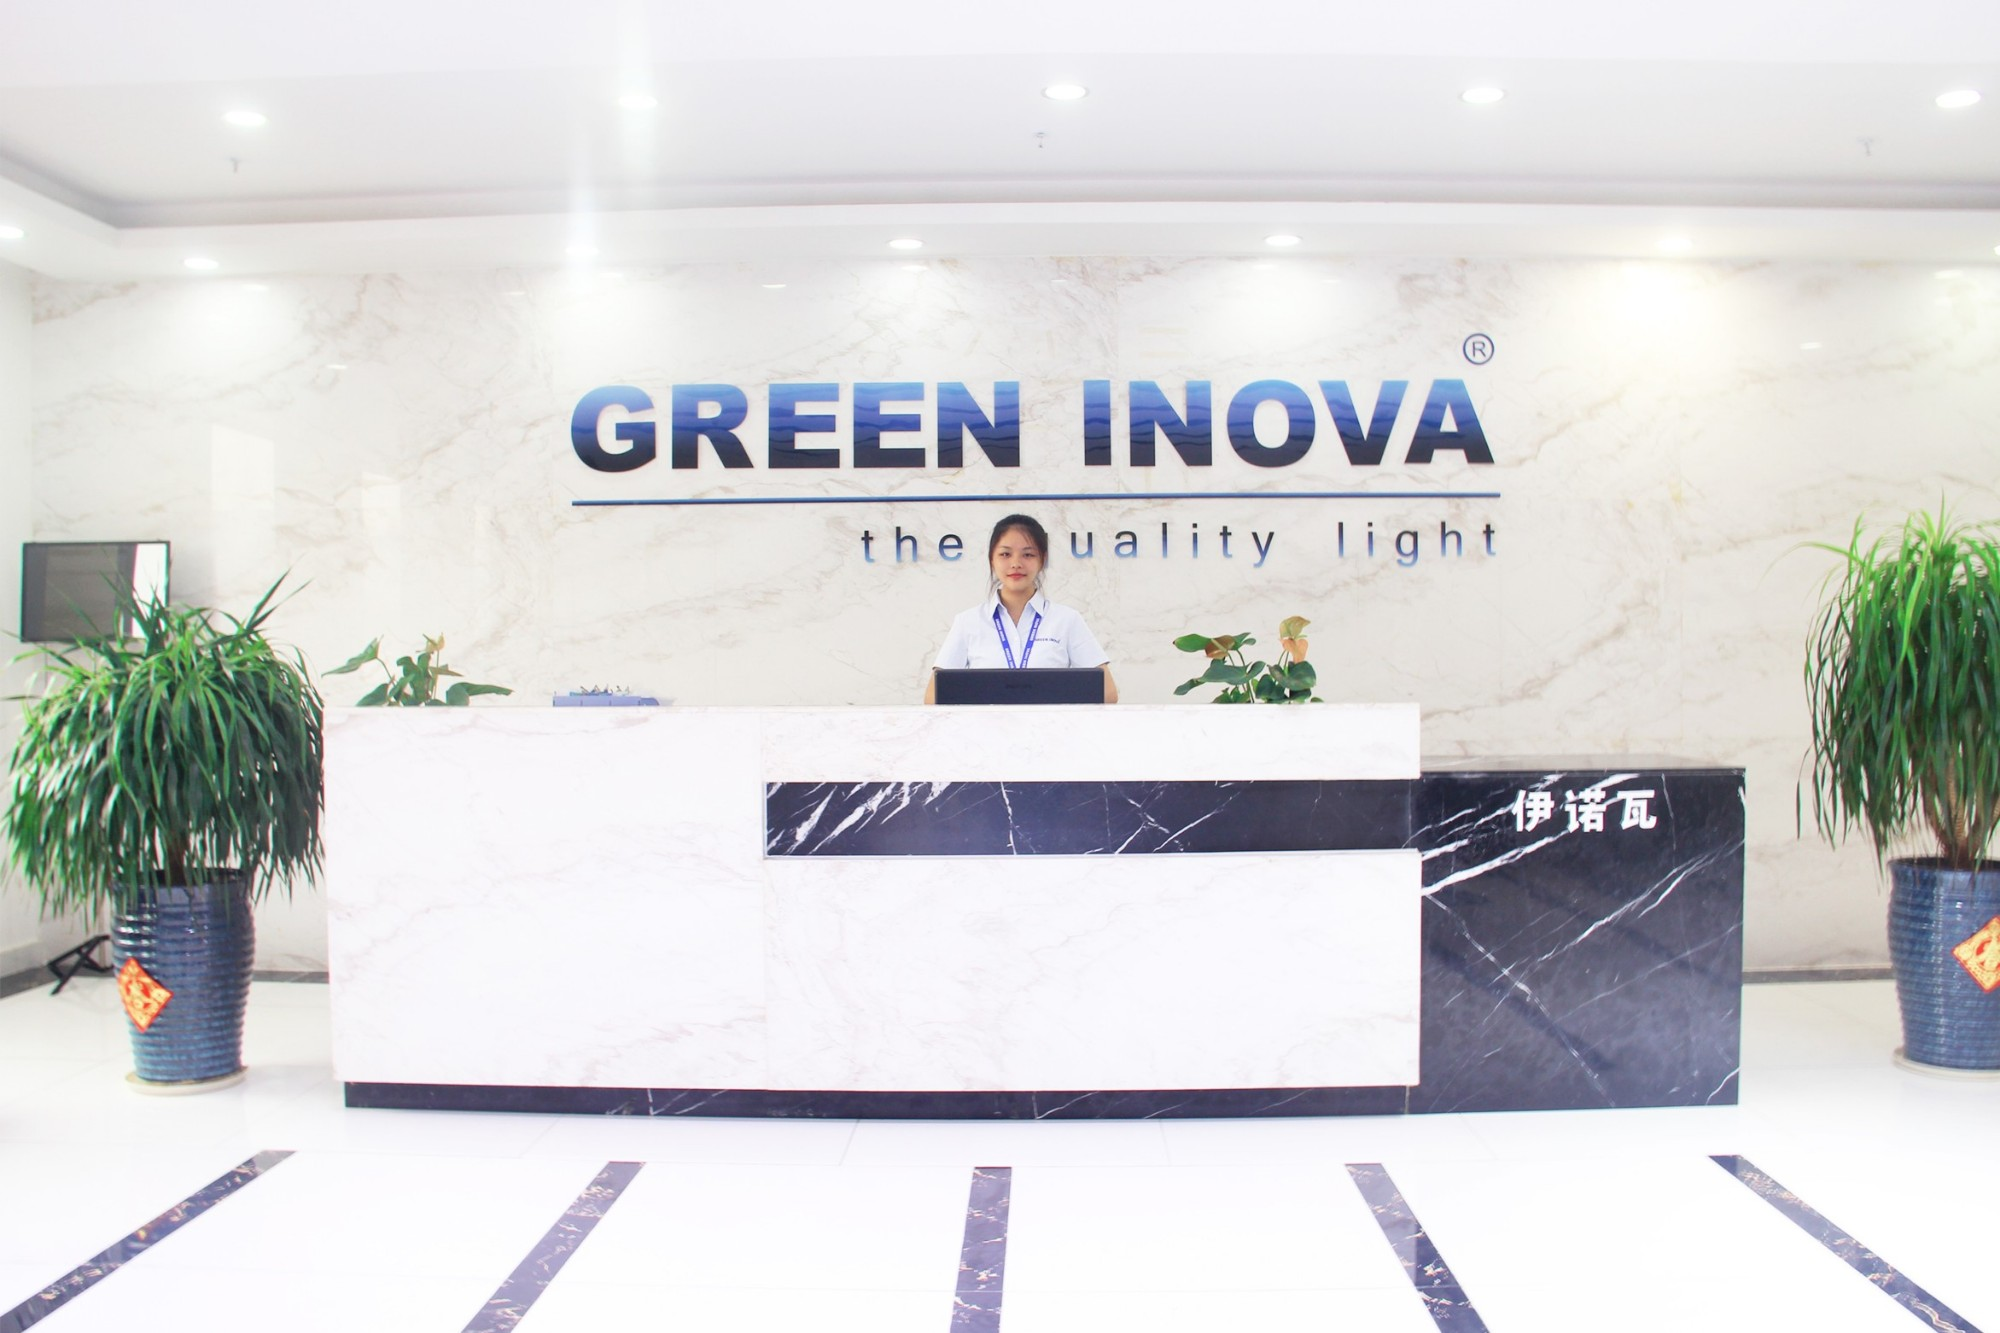 LED sports lighiting LED high mast lghting manufacturer Green Inova lighting